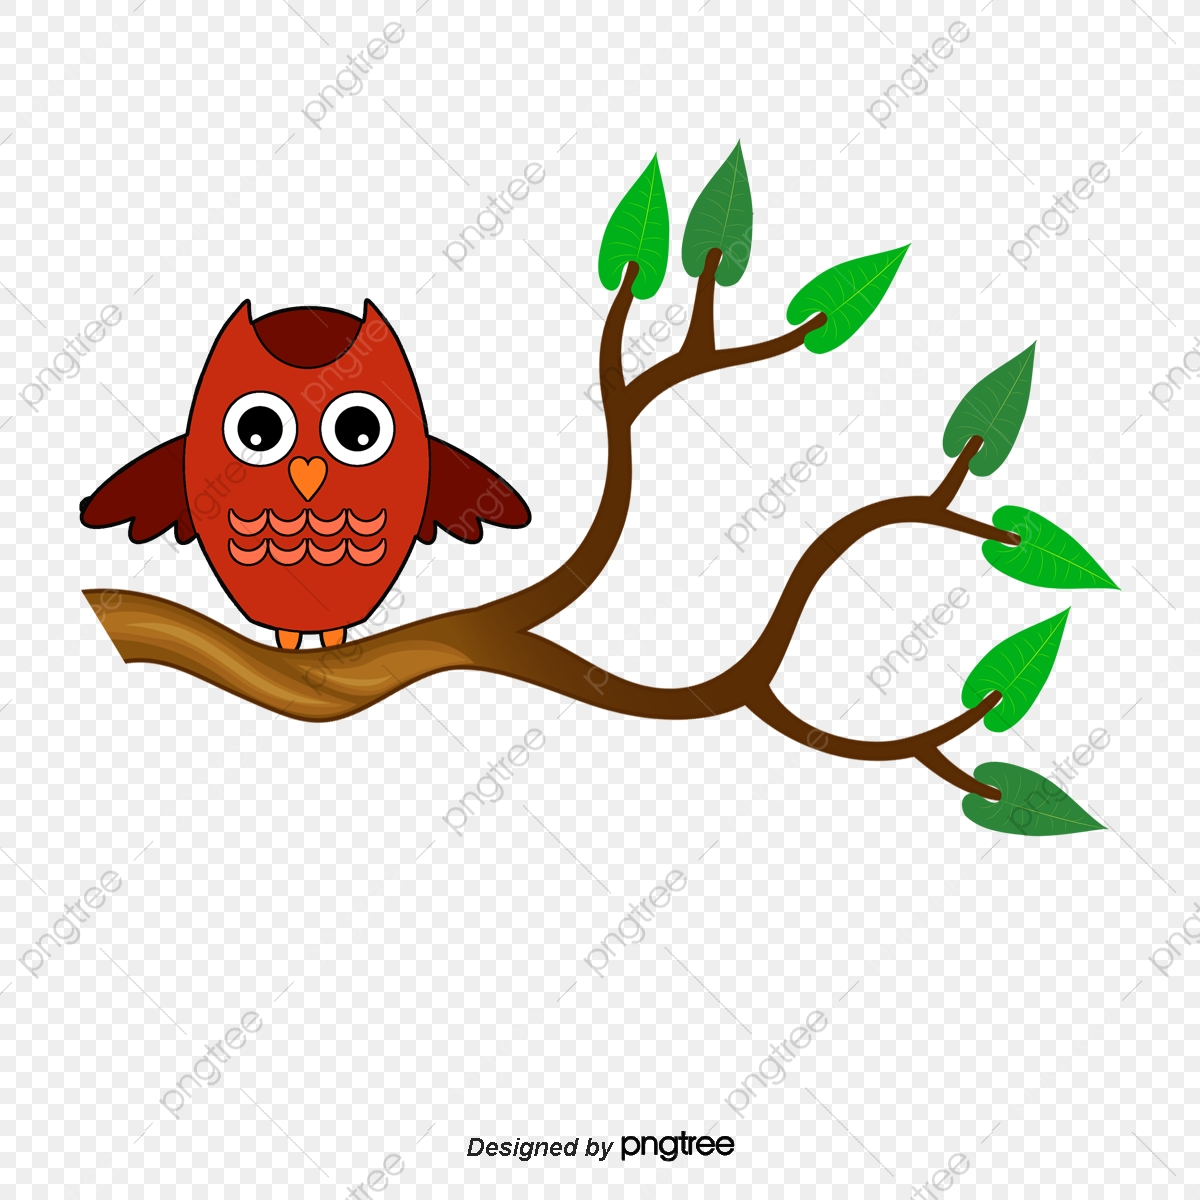 Owl Standing On Branch, Branch Clipart, Owl, Vector PNG and Vector.